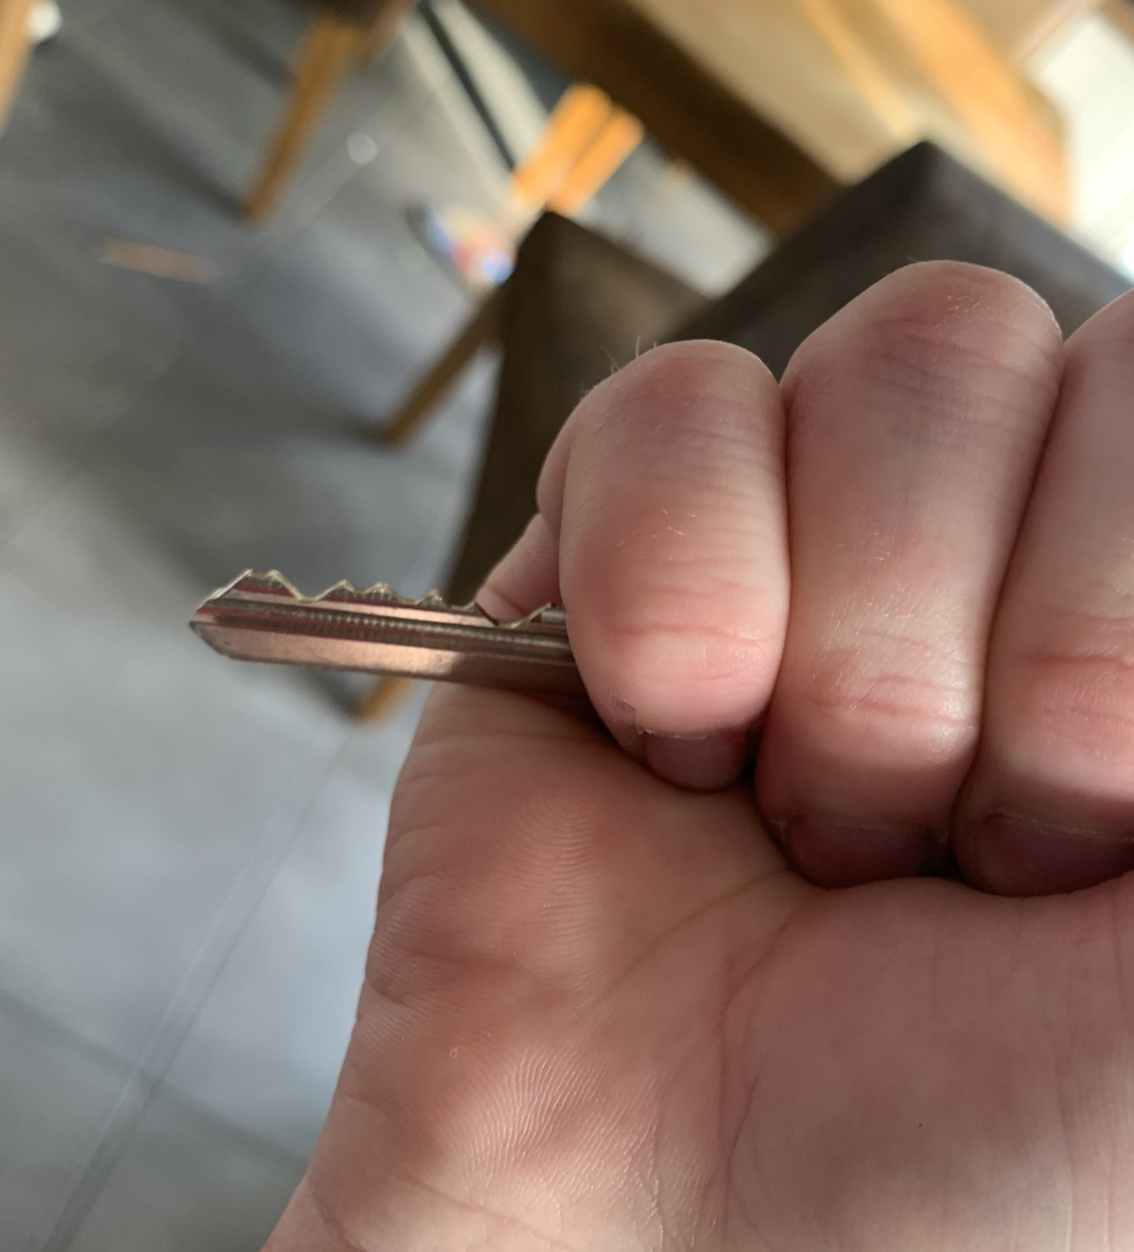 A hands holding a key